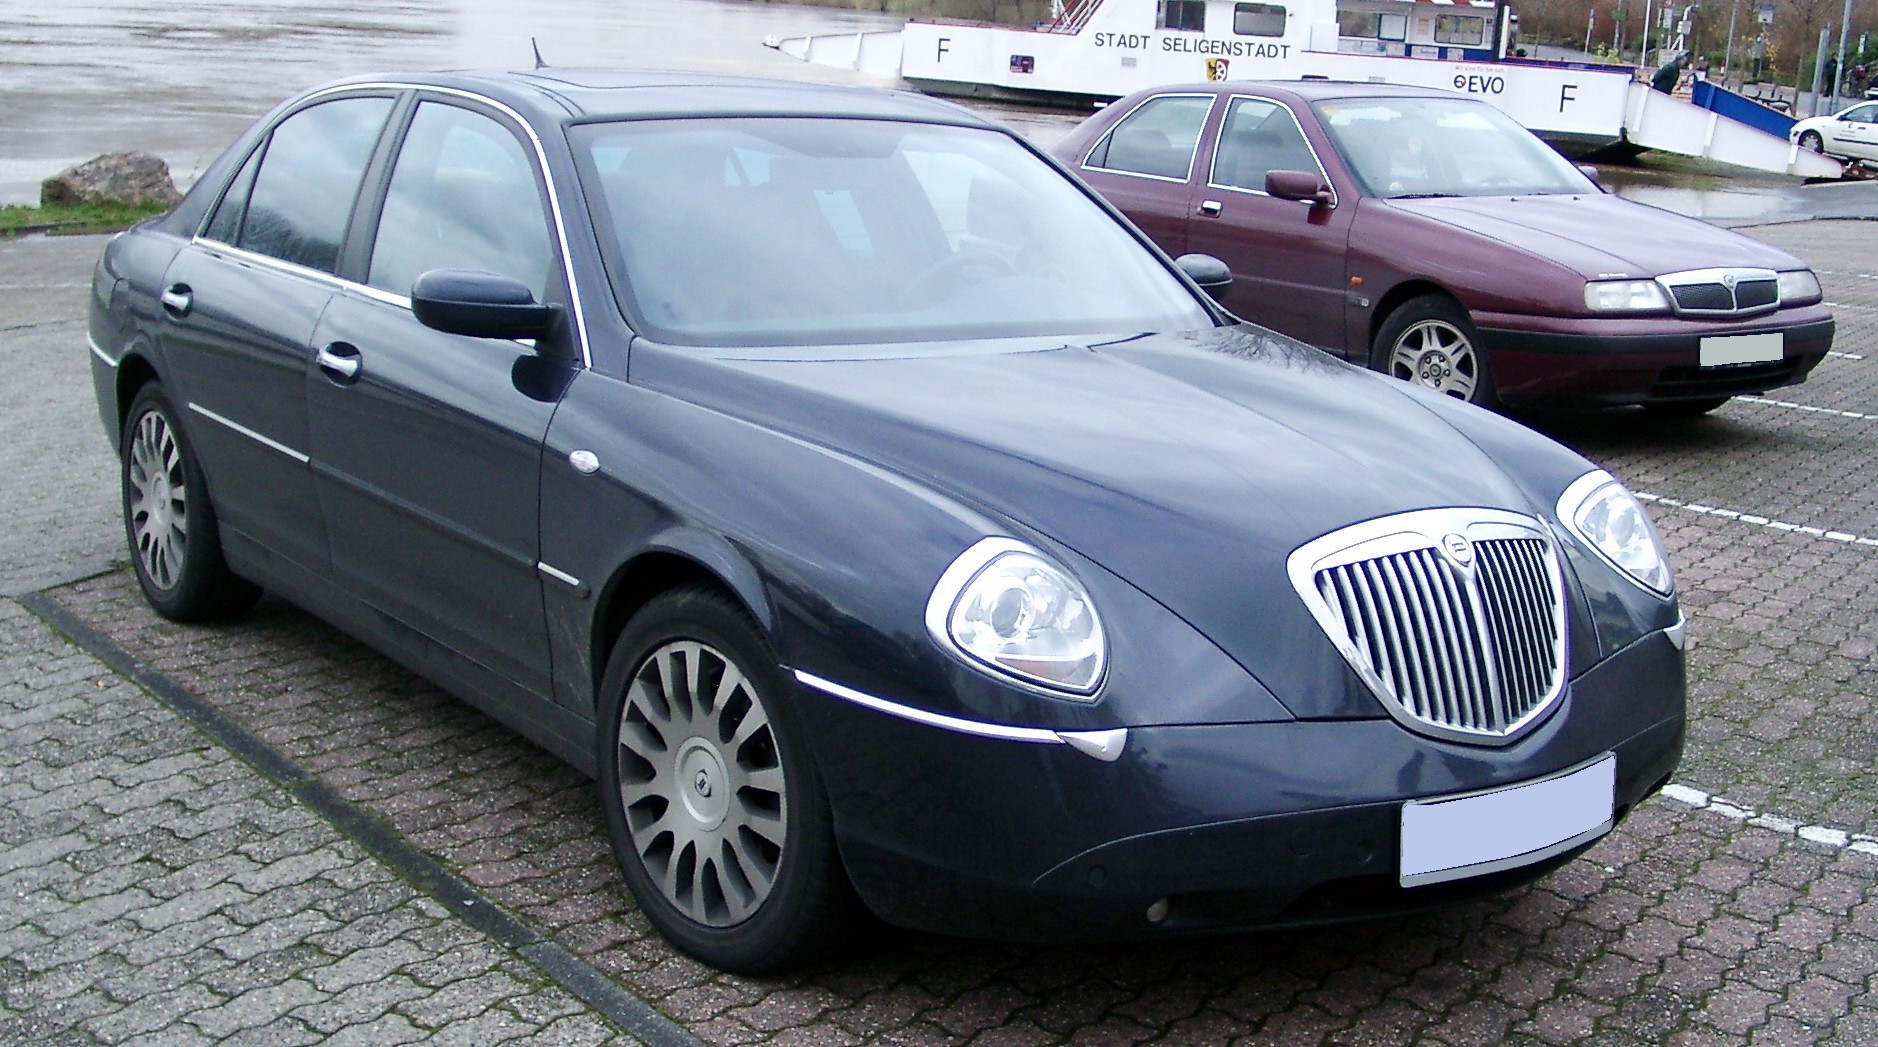 lancia thesis 2.0 turbo fuel consumption